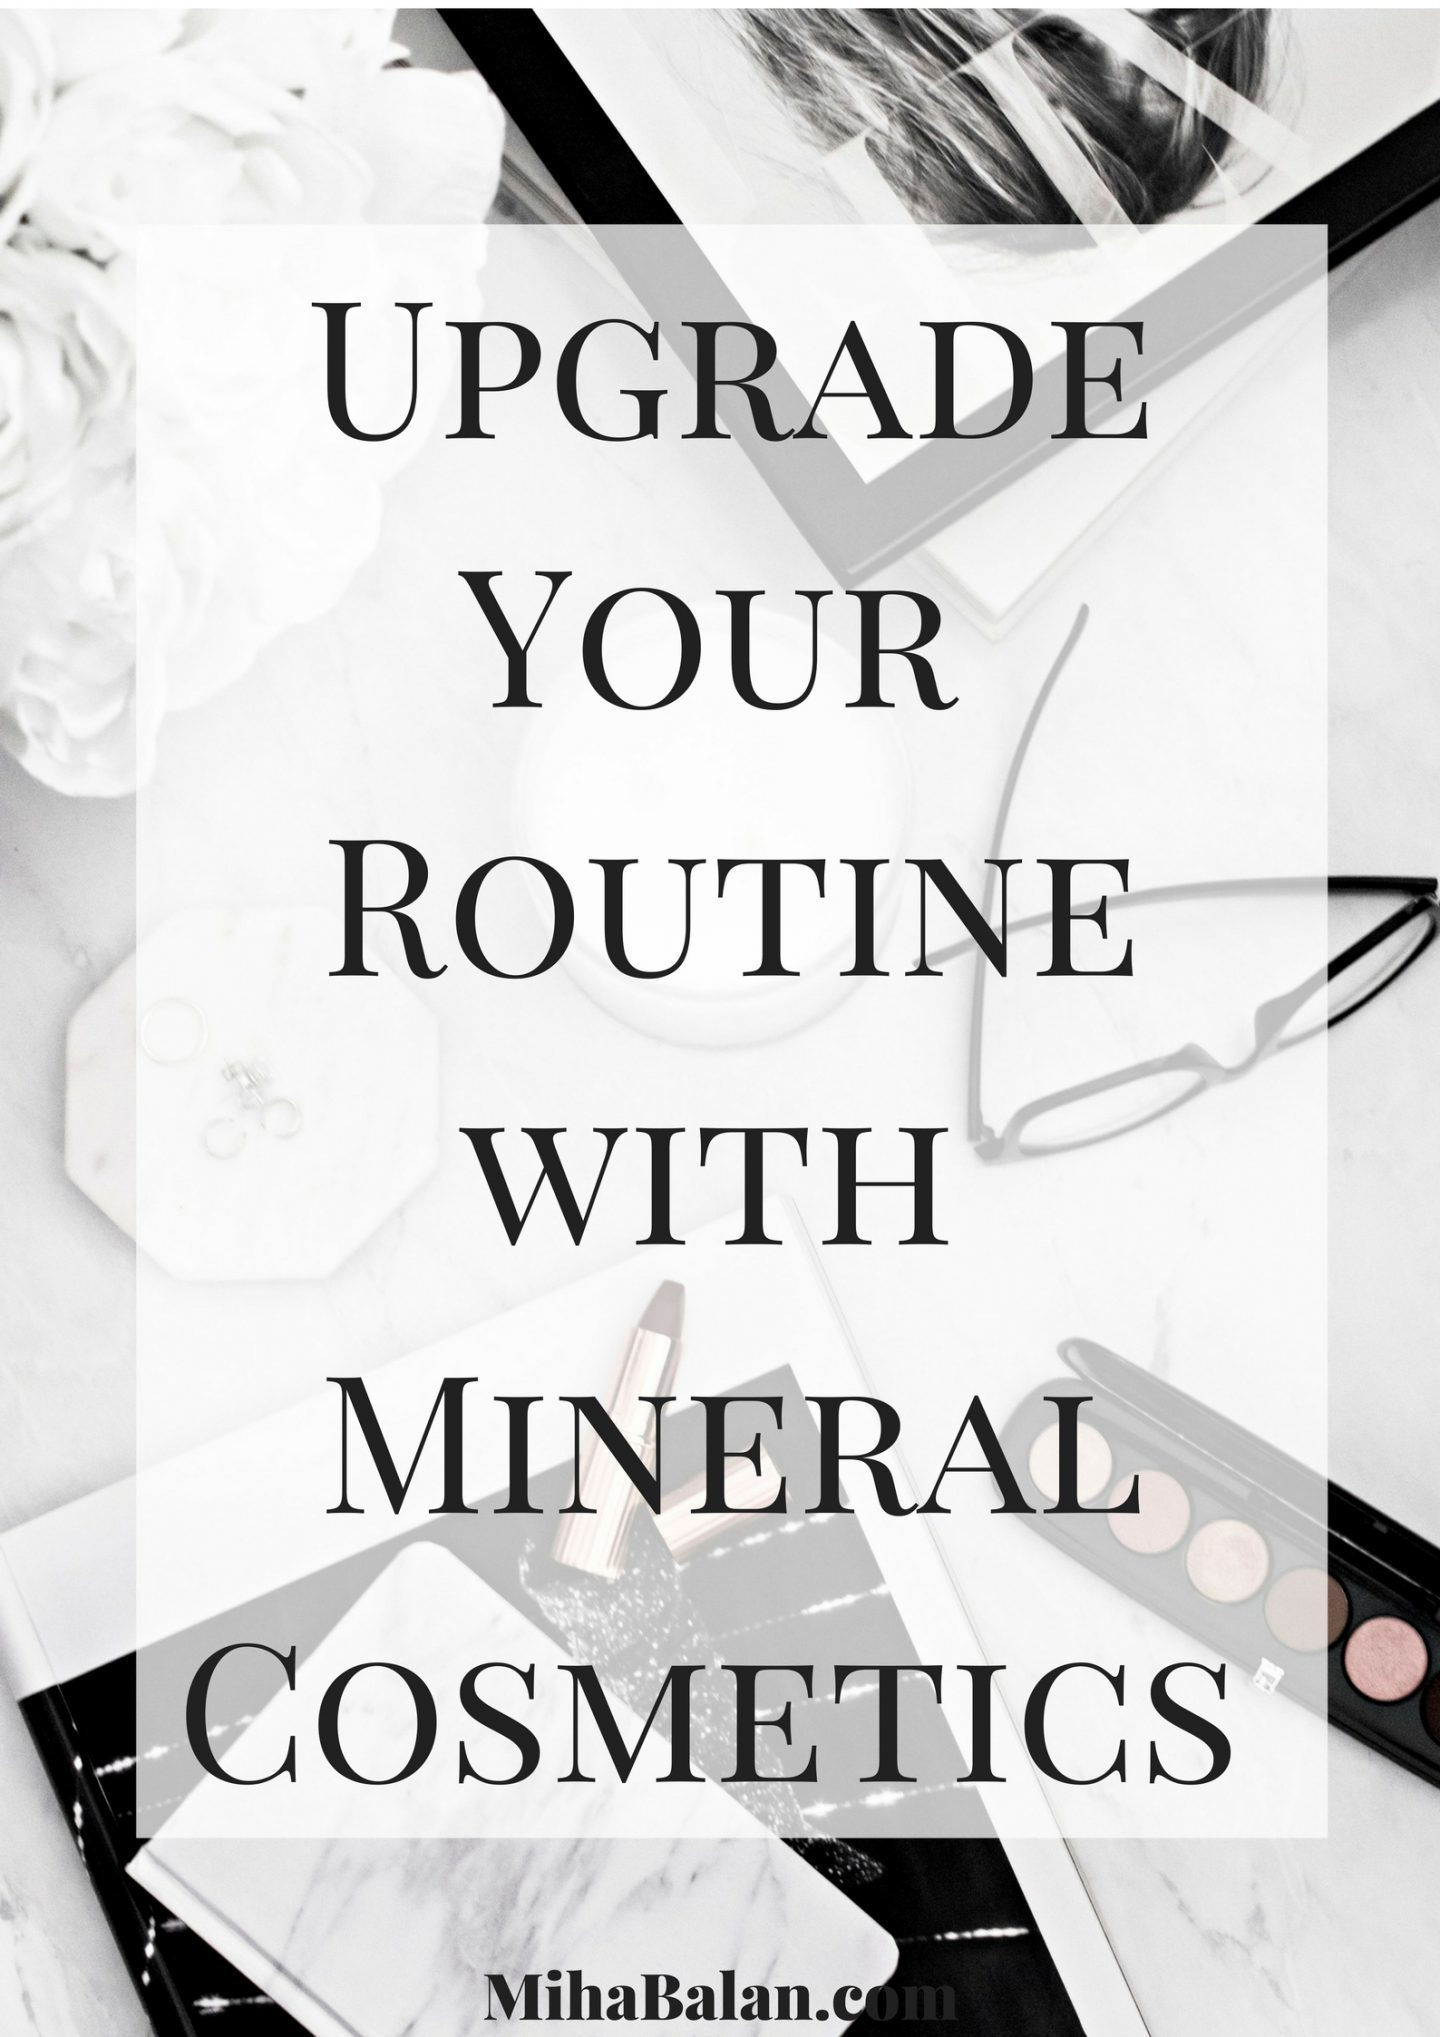 Upgrade Your Routinewith Mineral Cosmetics